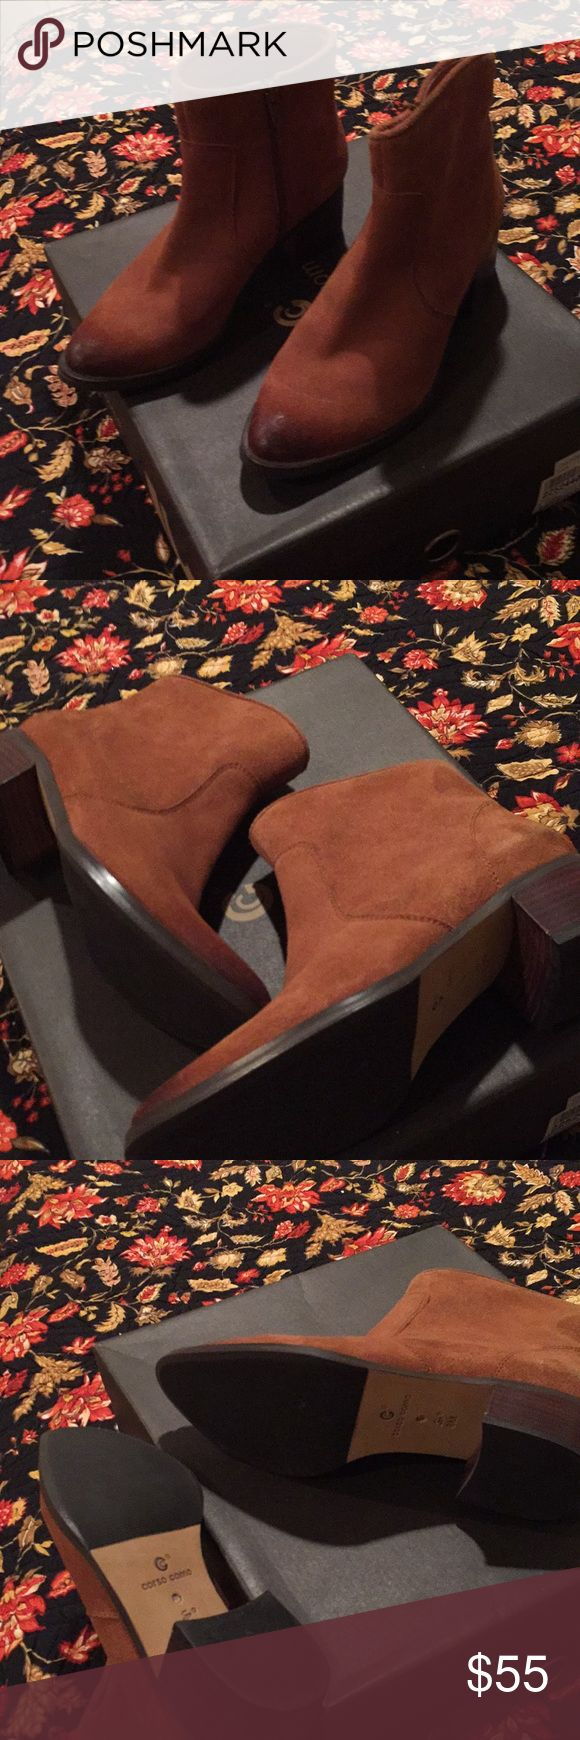 """Corso Como,  6B, NWB, Ankle Booties / Boots High quality,  suede leather inside and out.  Popular block-heel, wonderful Corso Como footbed, cushioning system.  Perfect! New in box. """"Chatham"""" style, """"Luggage"""" is the color.  I am selling several excellent, high-quality pair of shoes in size 6 B.  No smoking home, no pets.  CORSO COMO is my favorite brand!  Sold at Nordstrom and Dillards. Corso Como Shoes Ankle Boots & Booties"""